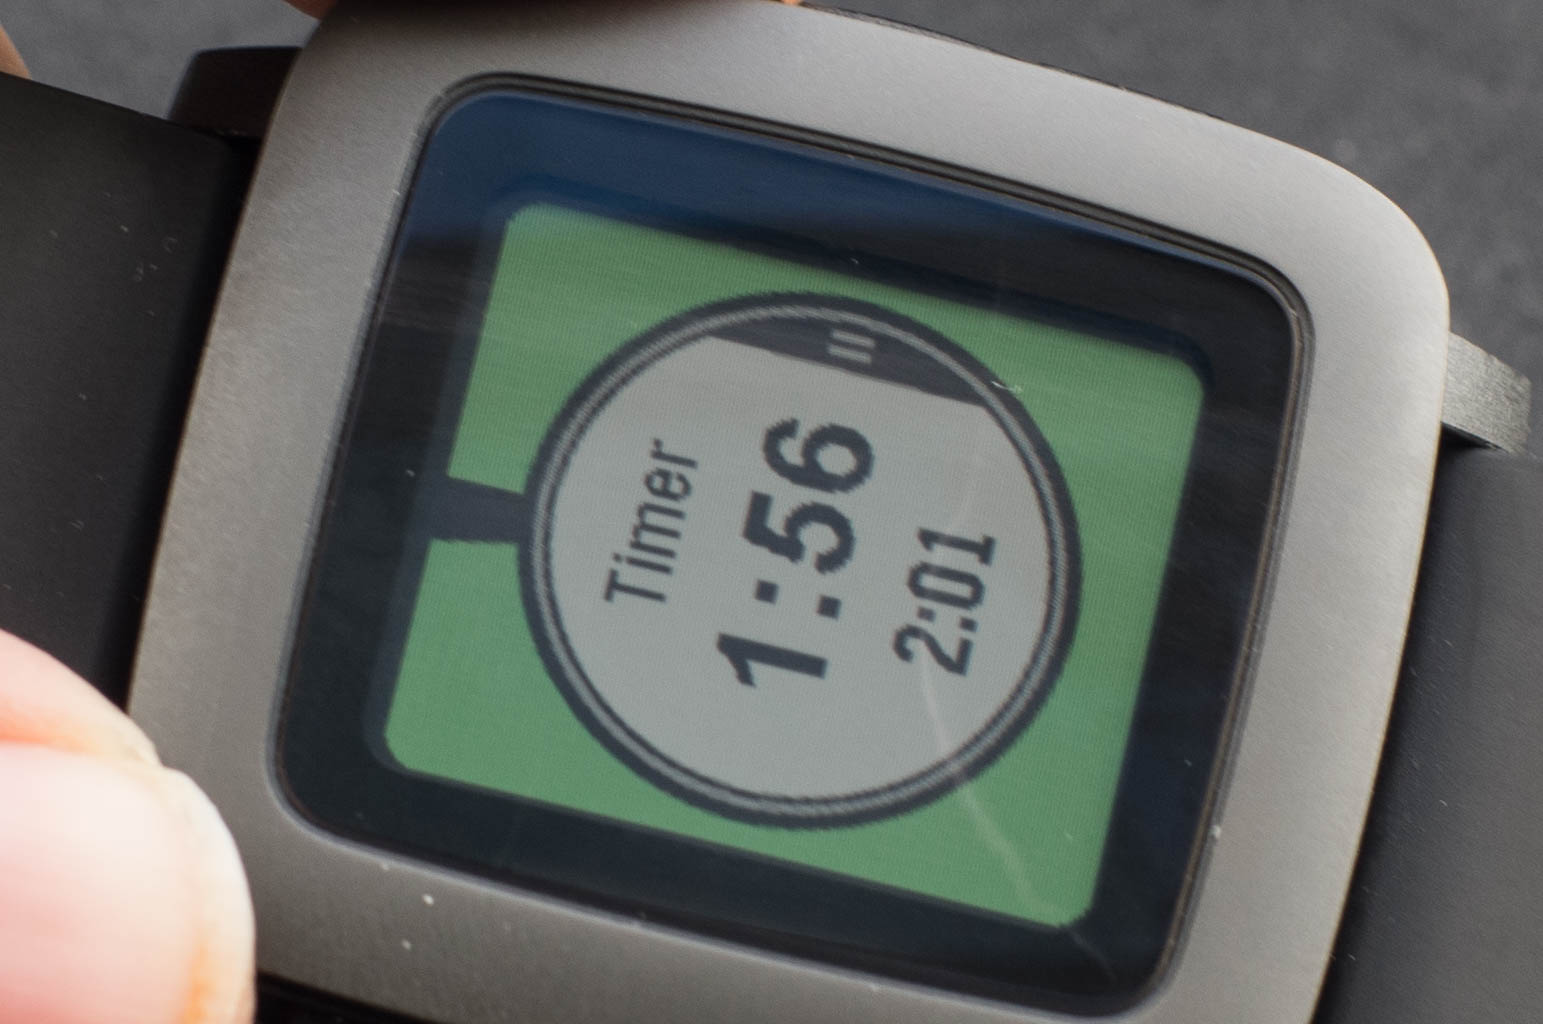 Pebble Time im Test: Nicht besonders smart, aber watch - Pebble Time (Bild: Andreas Donath)